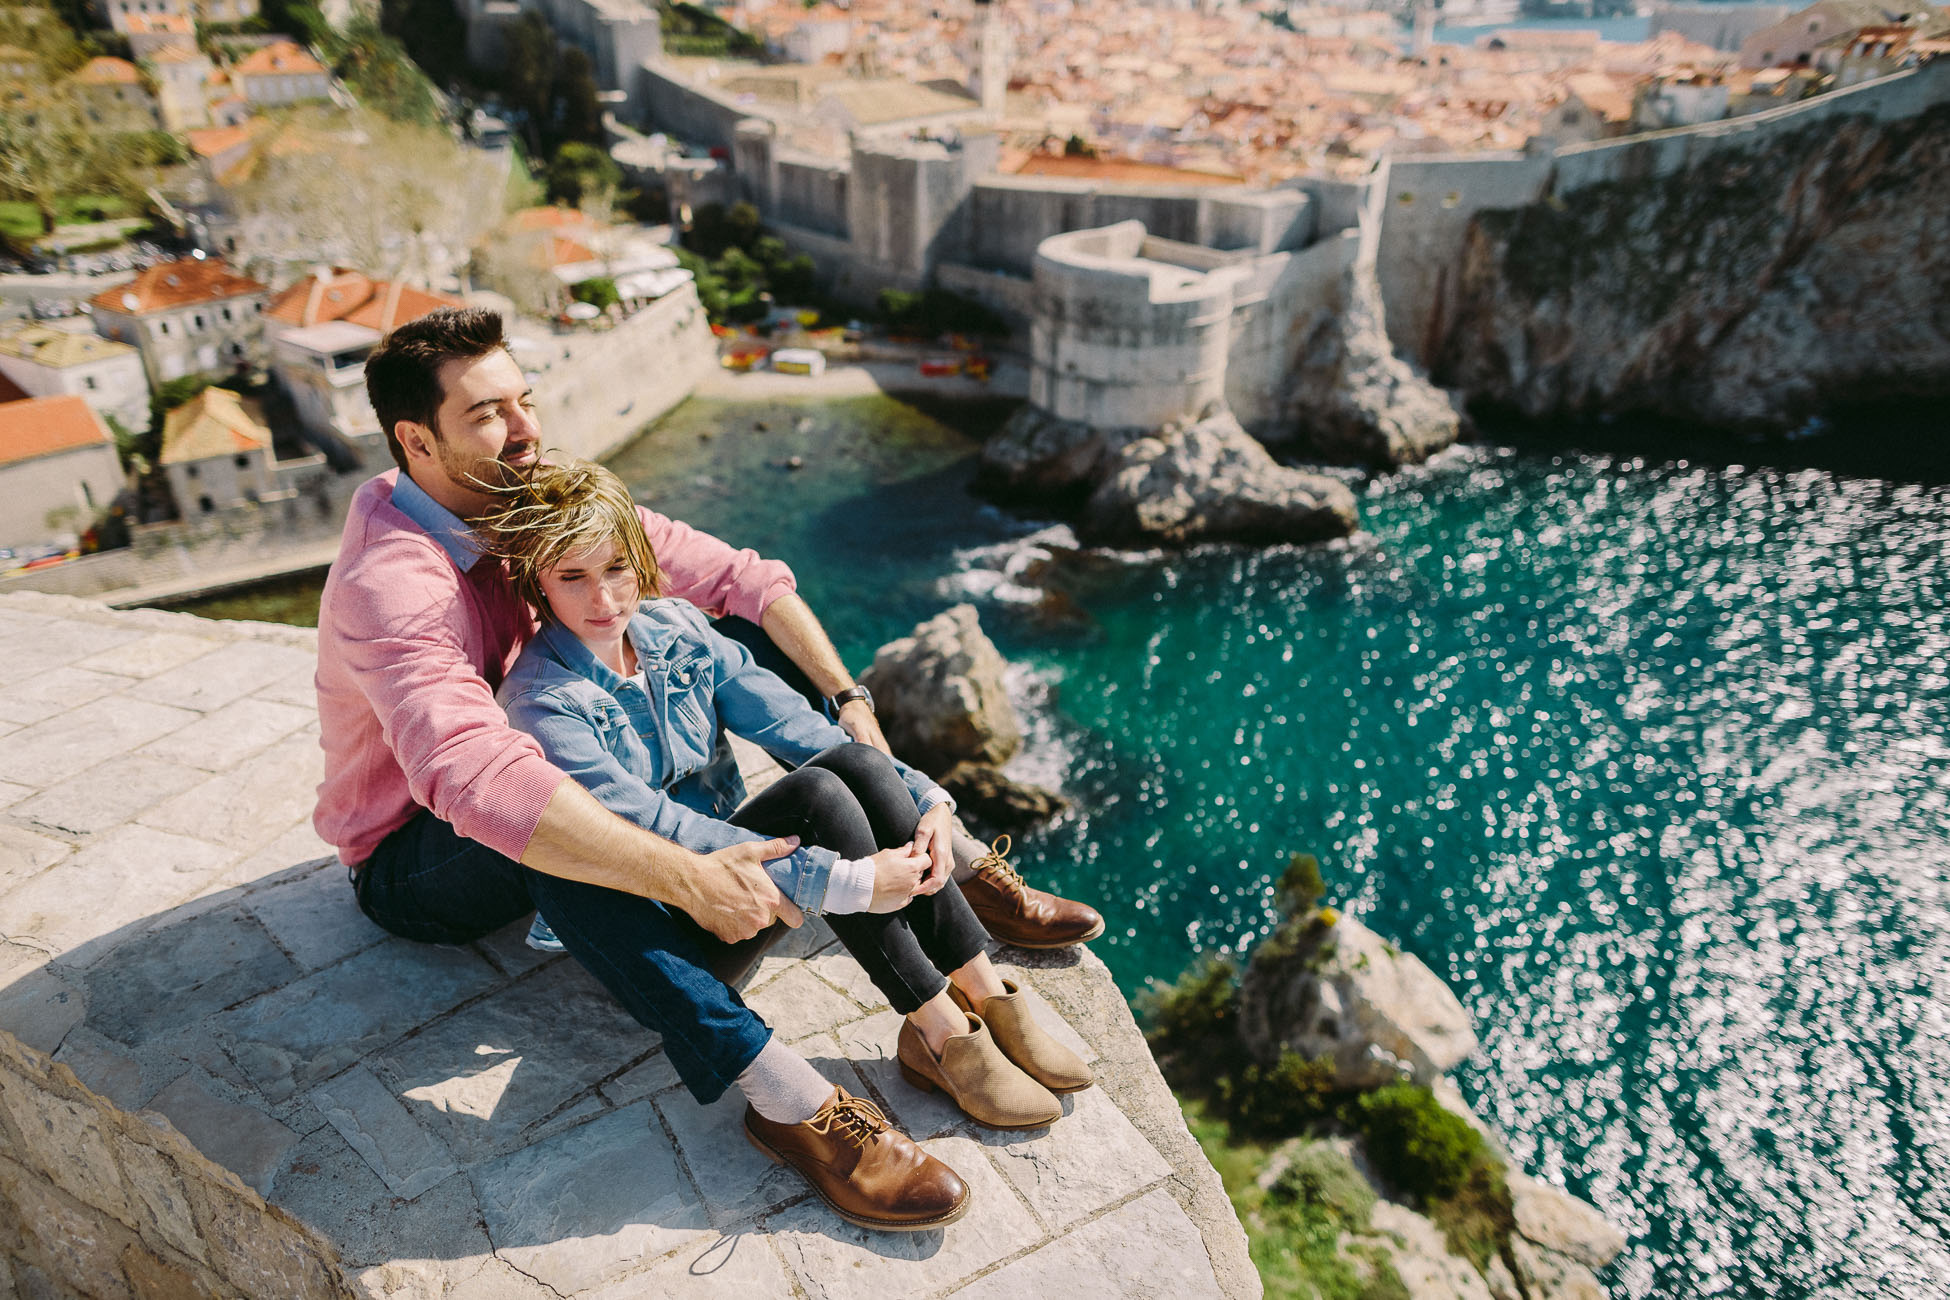 Dubrovnik Love story photographer